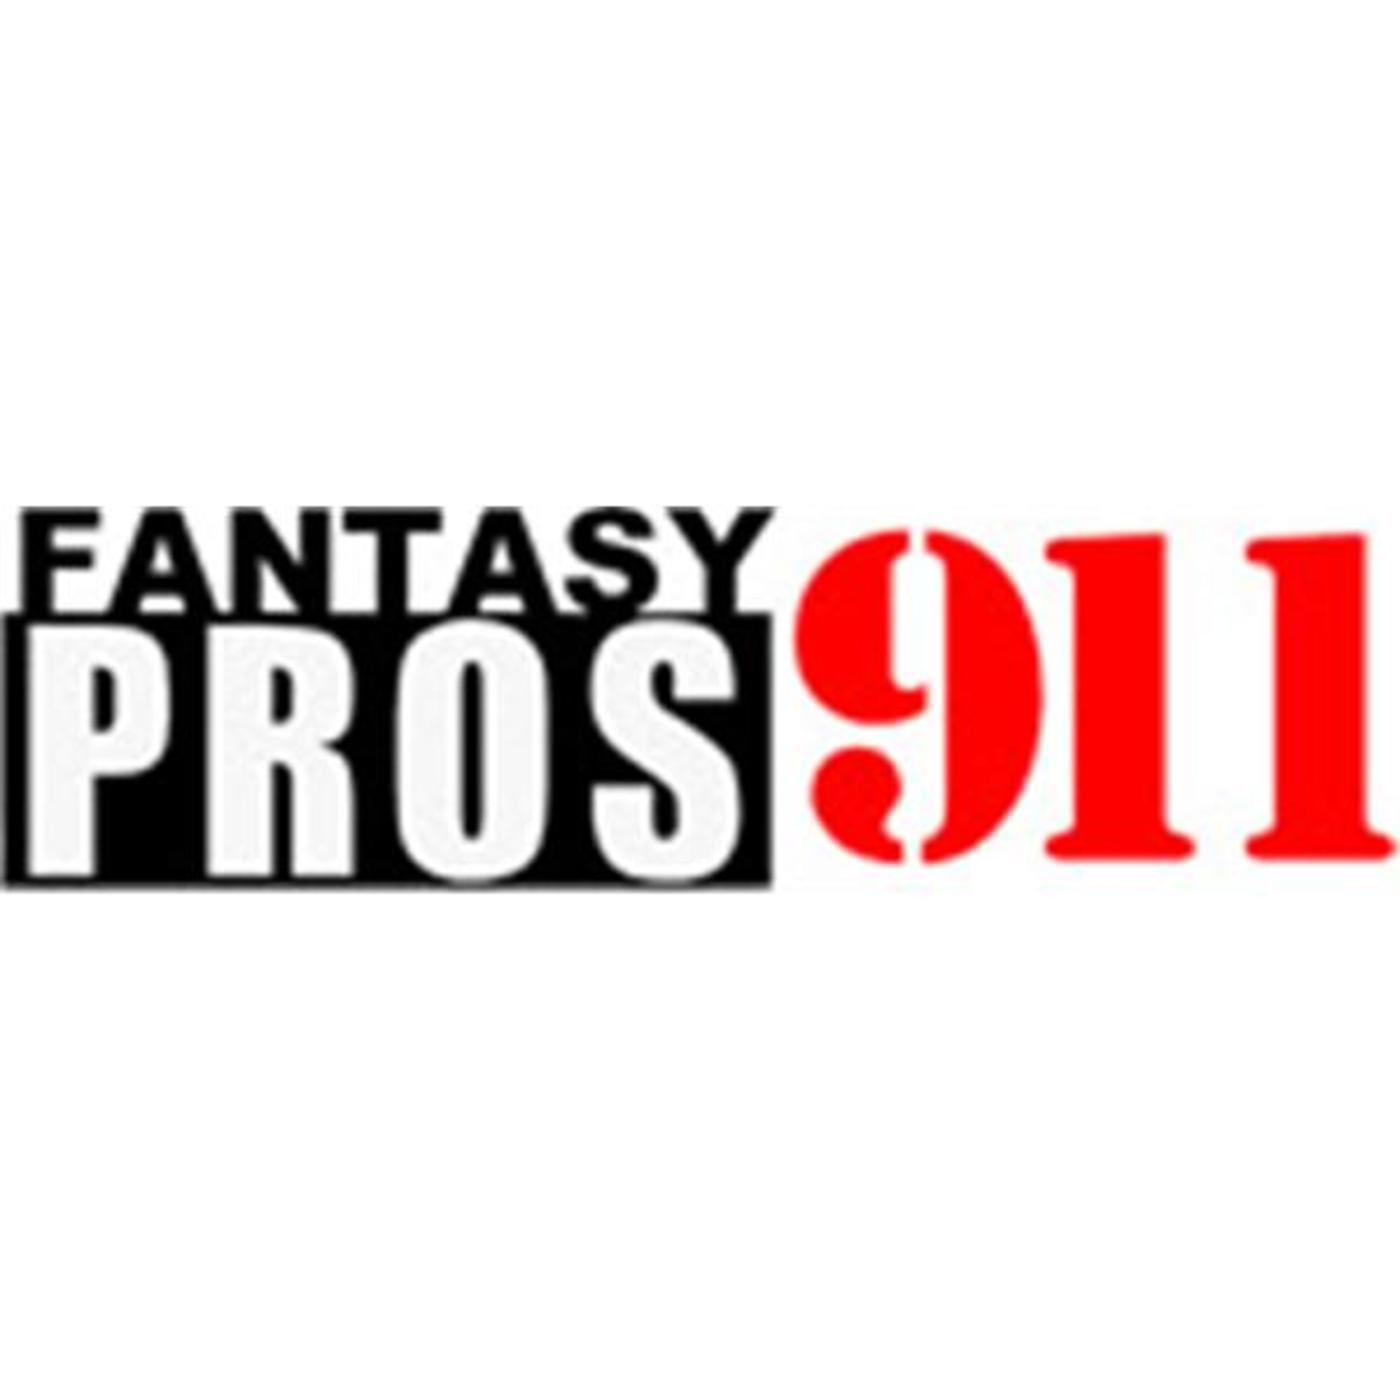 FantasyPros911 Football